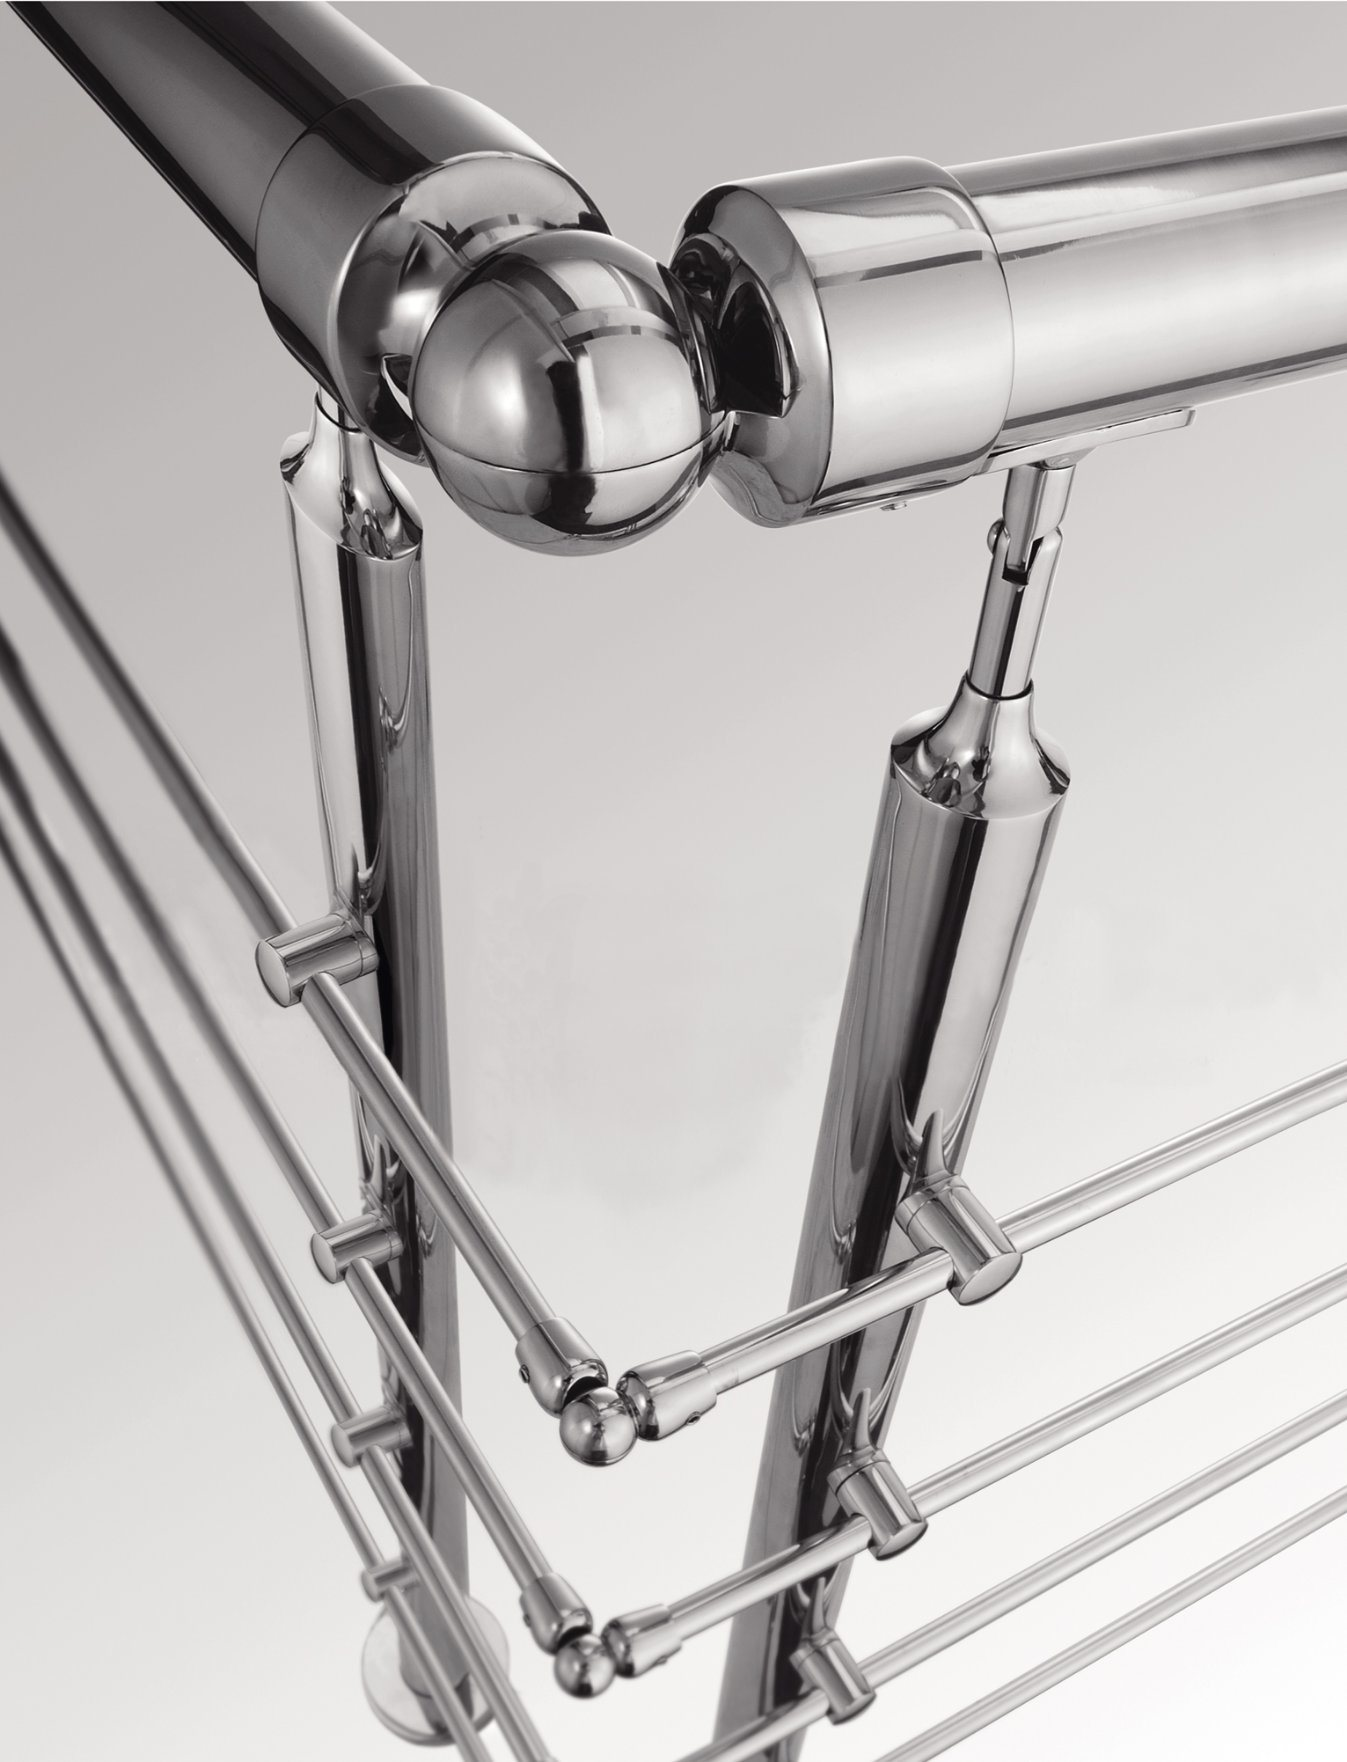 Stainless Handrail Fittings for Mirror Ball